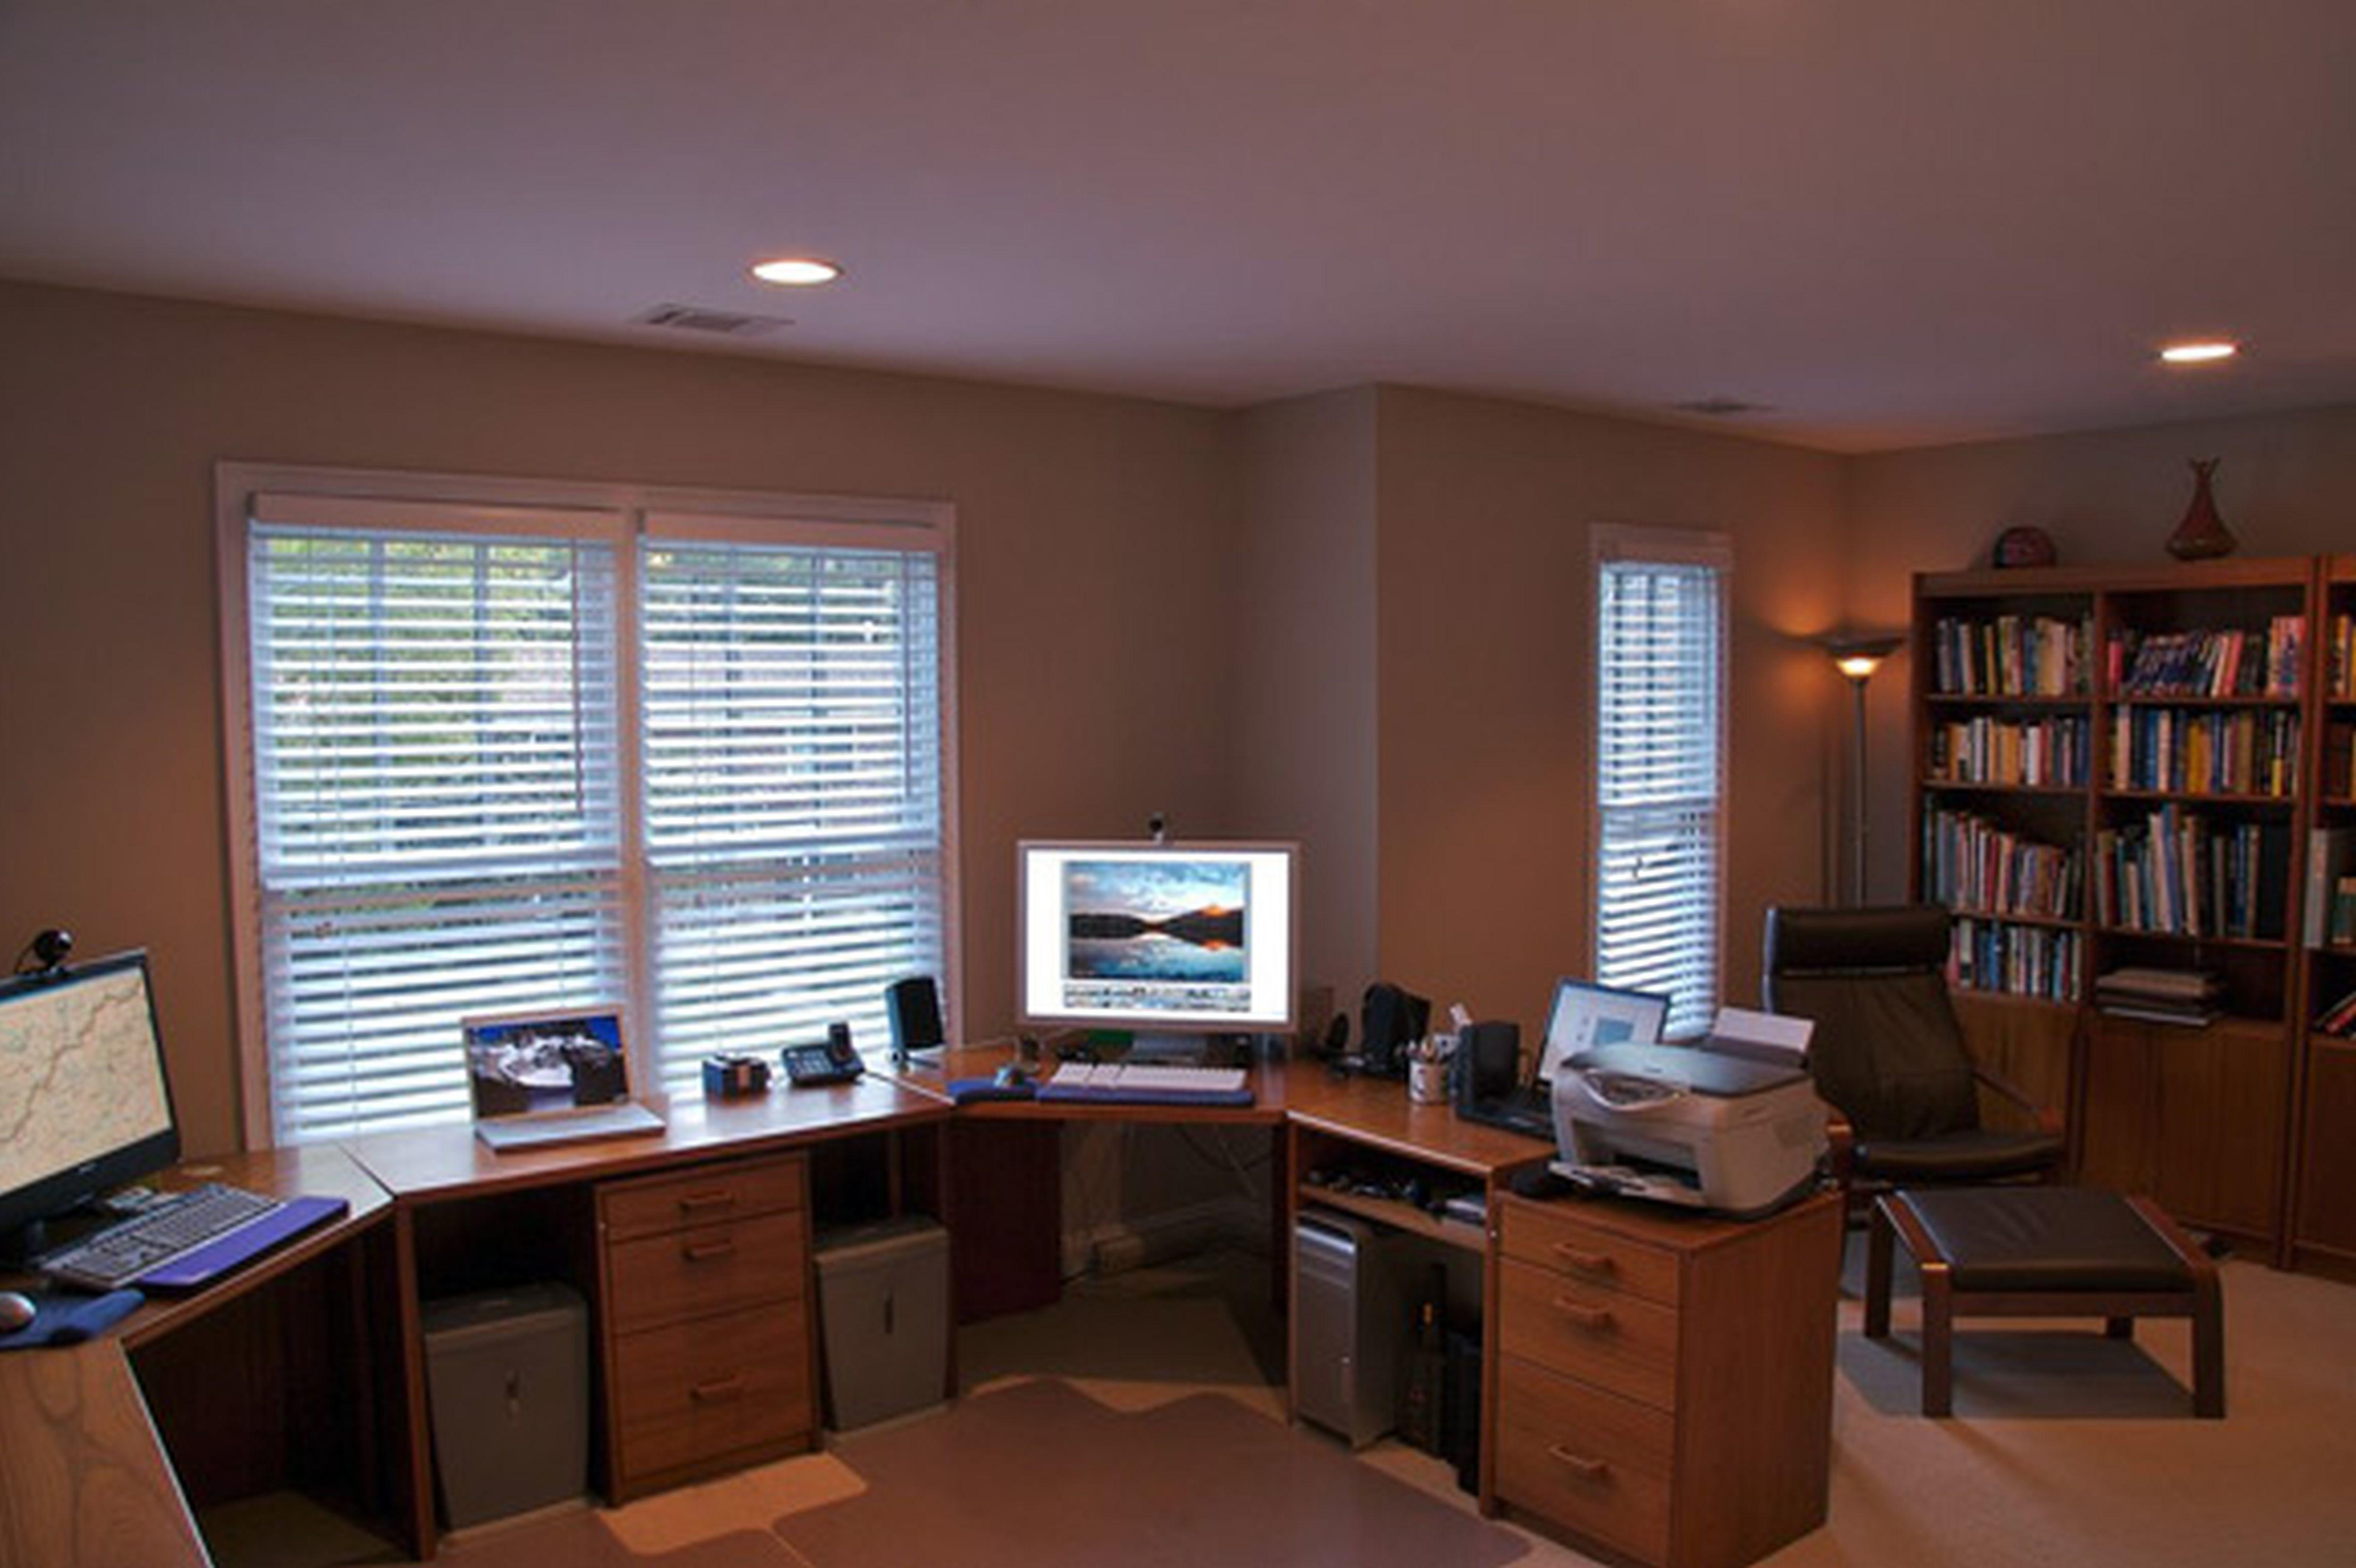 Home Office Decorating Small Layout